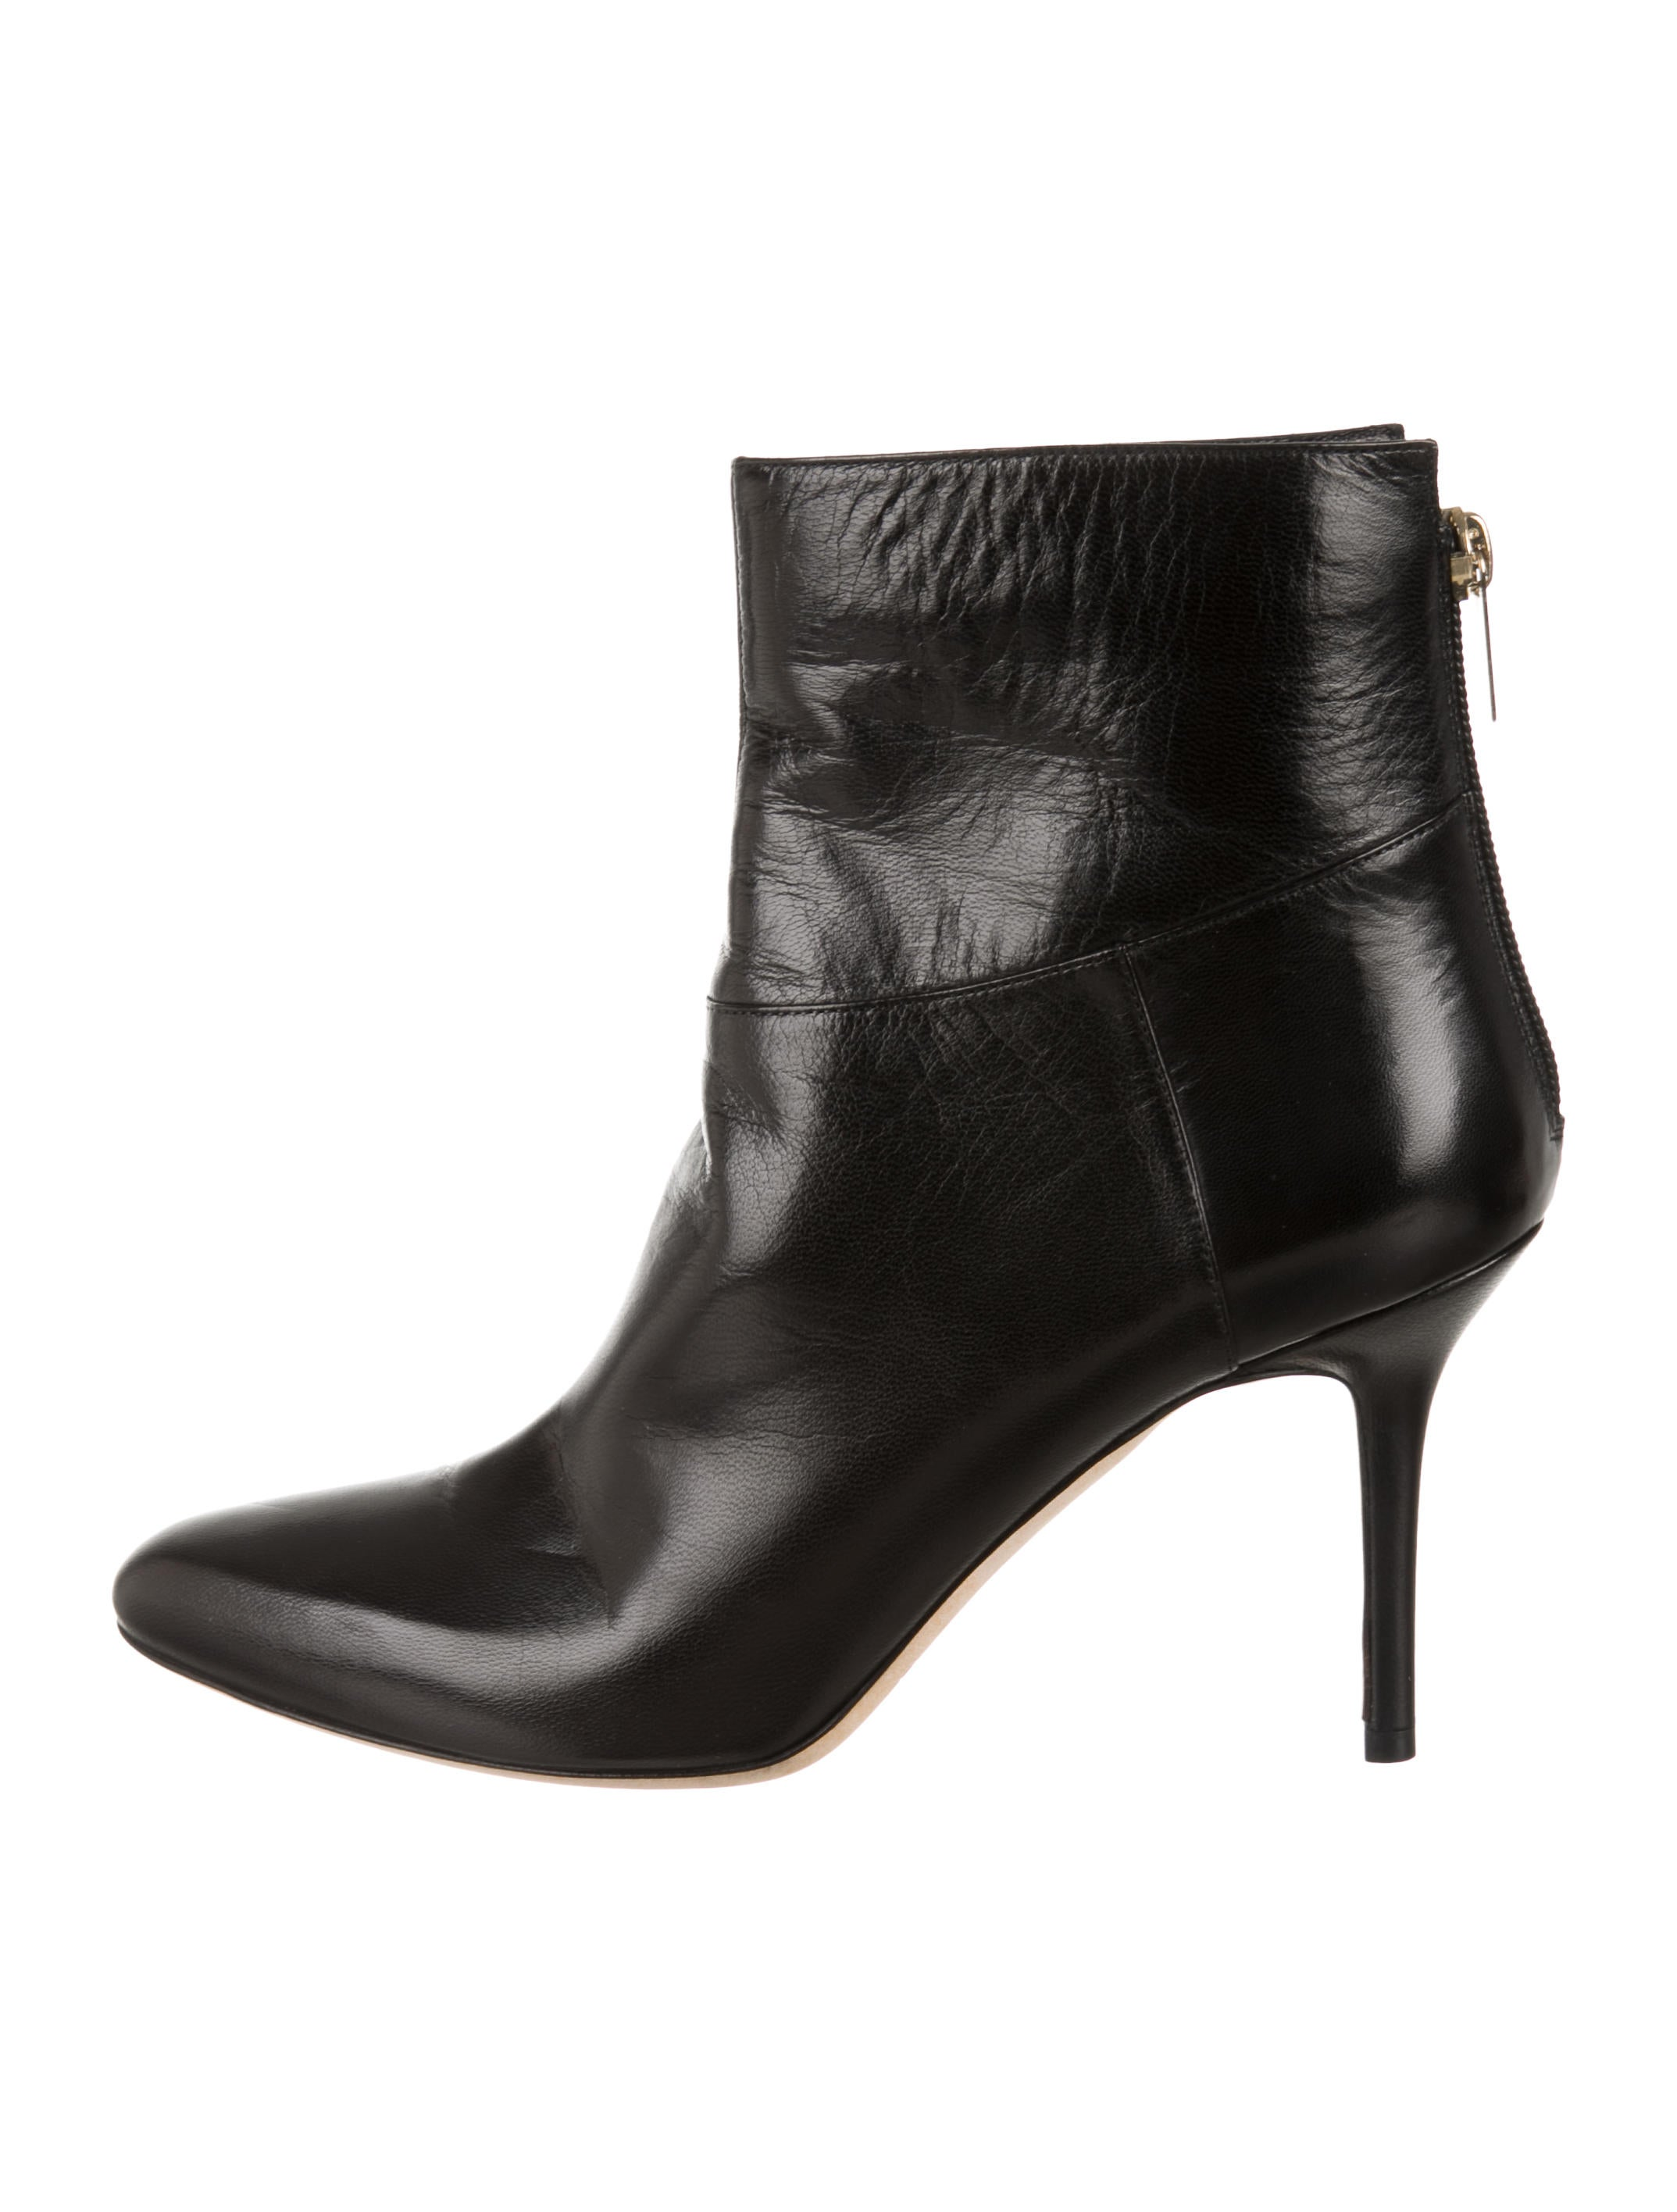 68021abce151 Jimmy Choo Keagan Leather Ankle Boots - Shoes - JIM104478